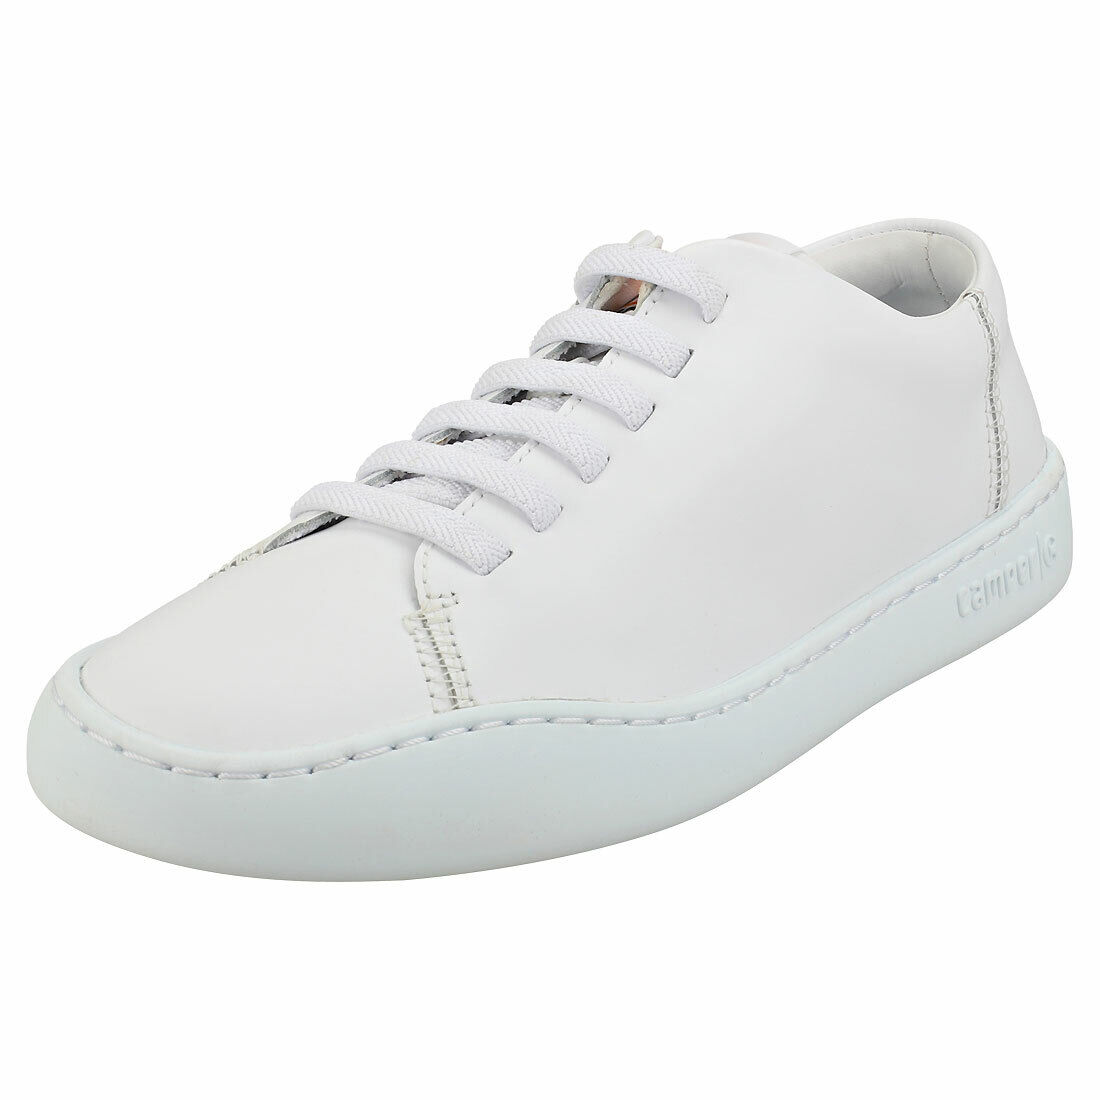 Camper Peu Touring damen Weiß Leather Casual schuhe